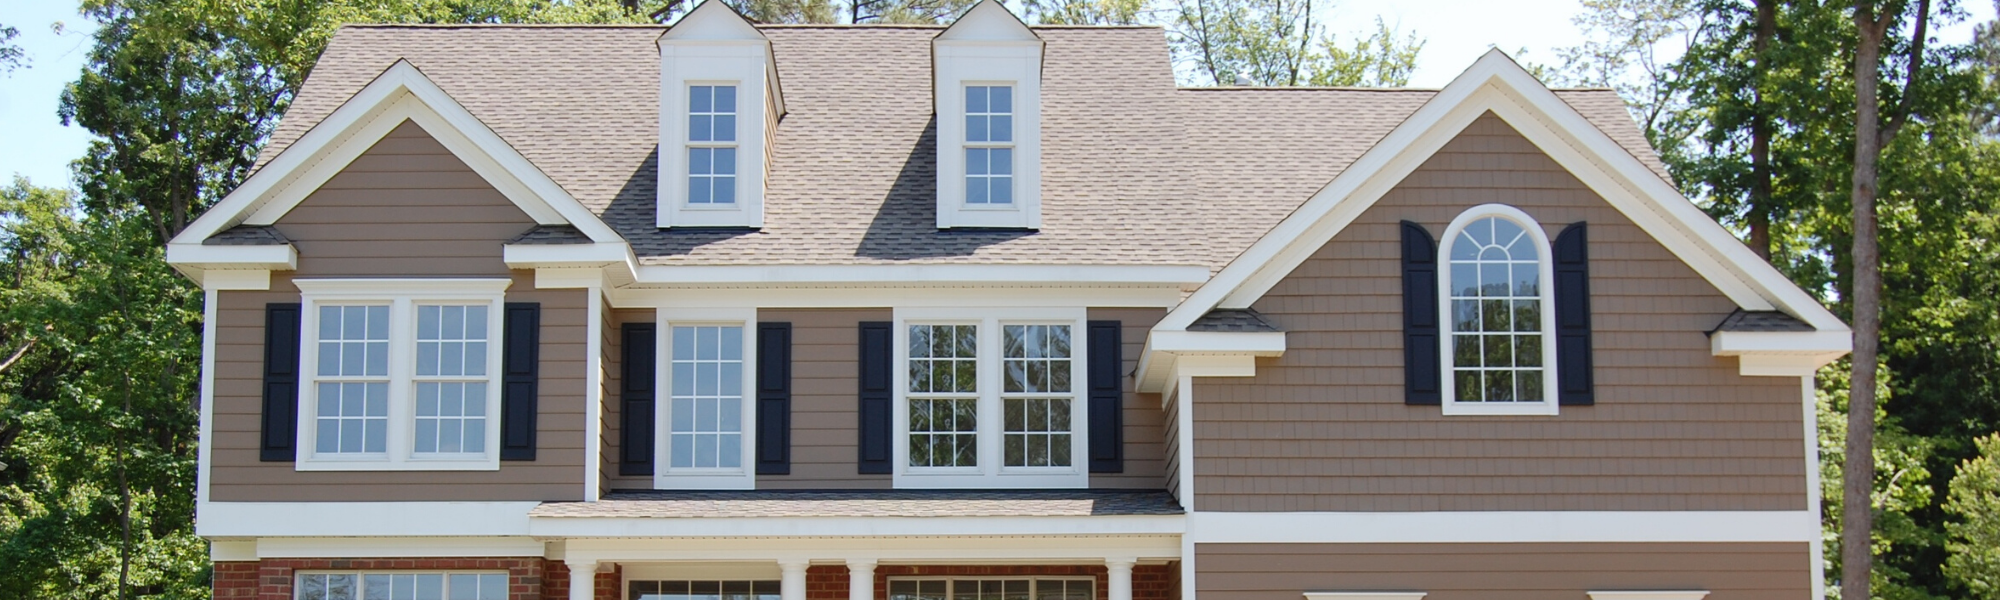 Roofing Services Ltd Exteriors Inc In Sanford Nc